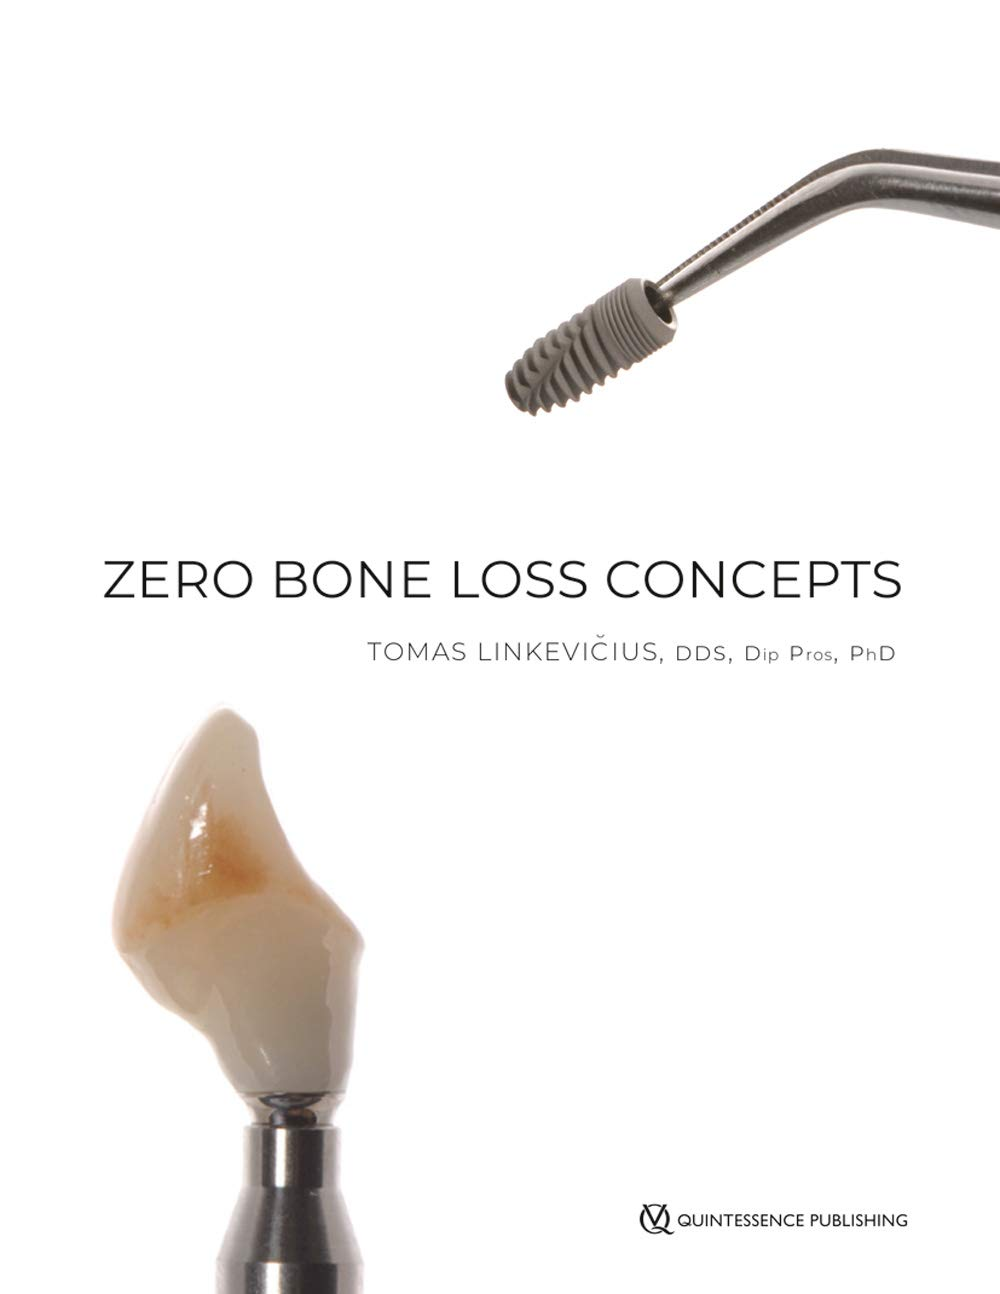 Image OfZero Bone Loss Concepts